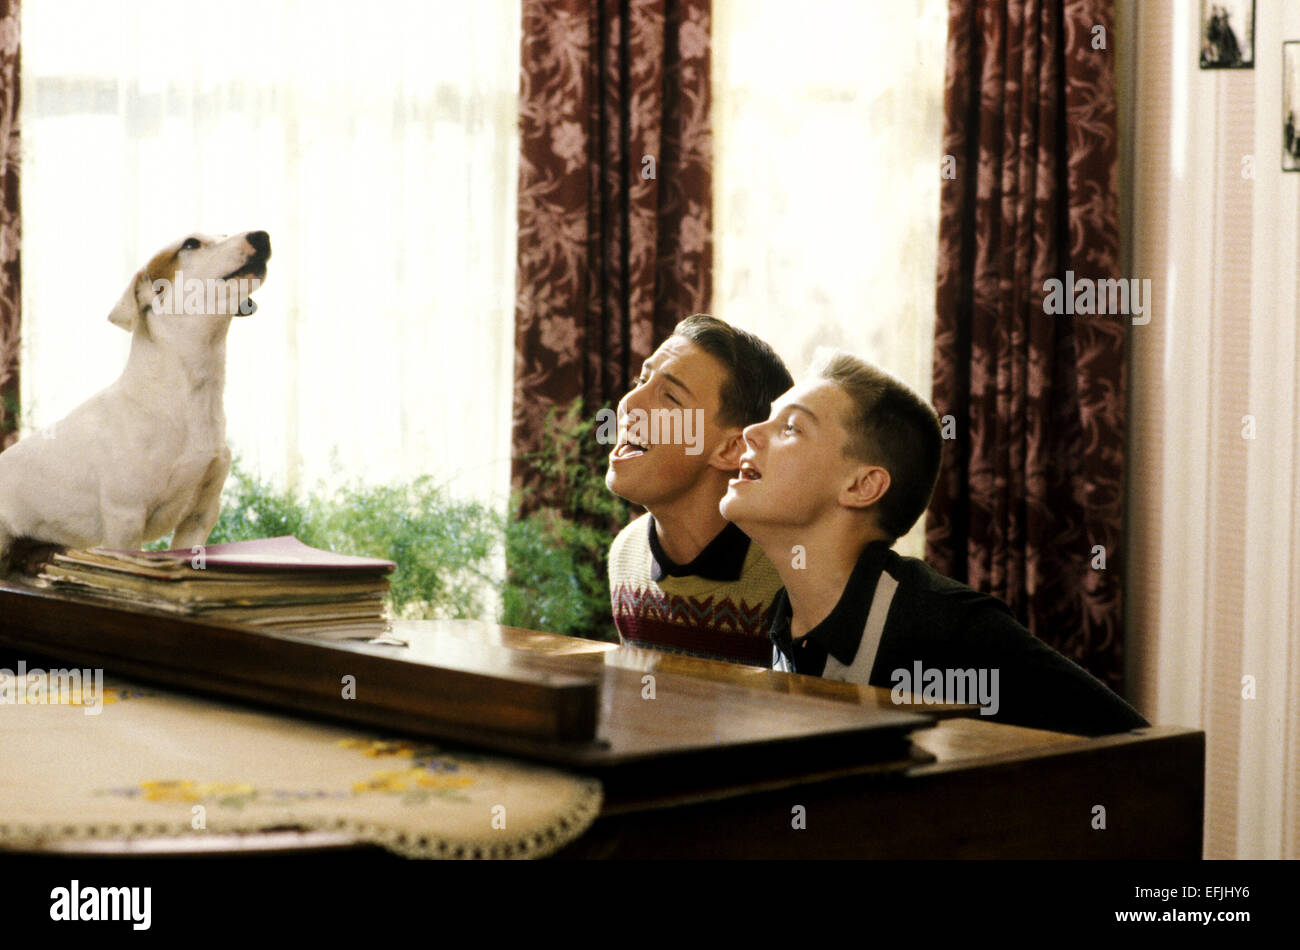 Image result for leonardo dicaprio playing piano in this boy's life